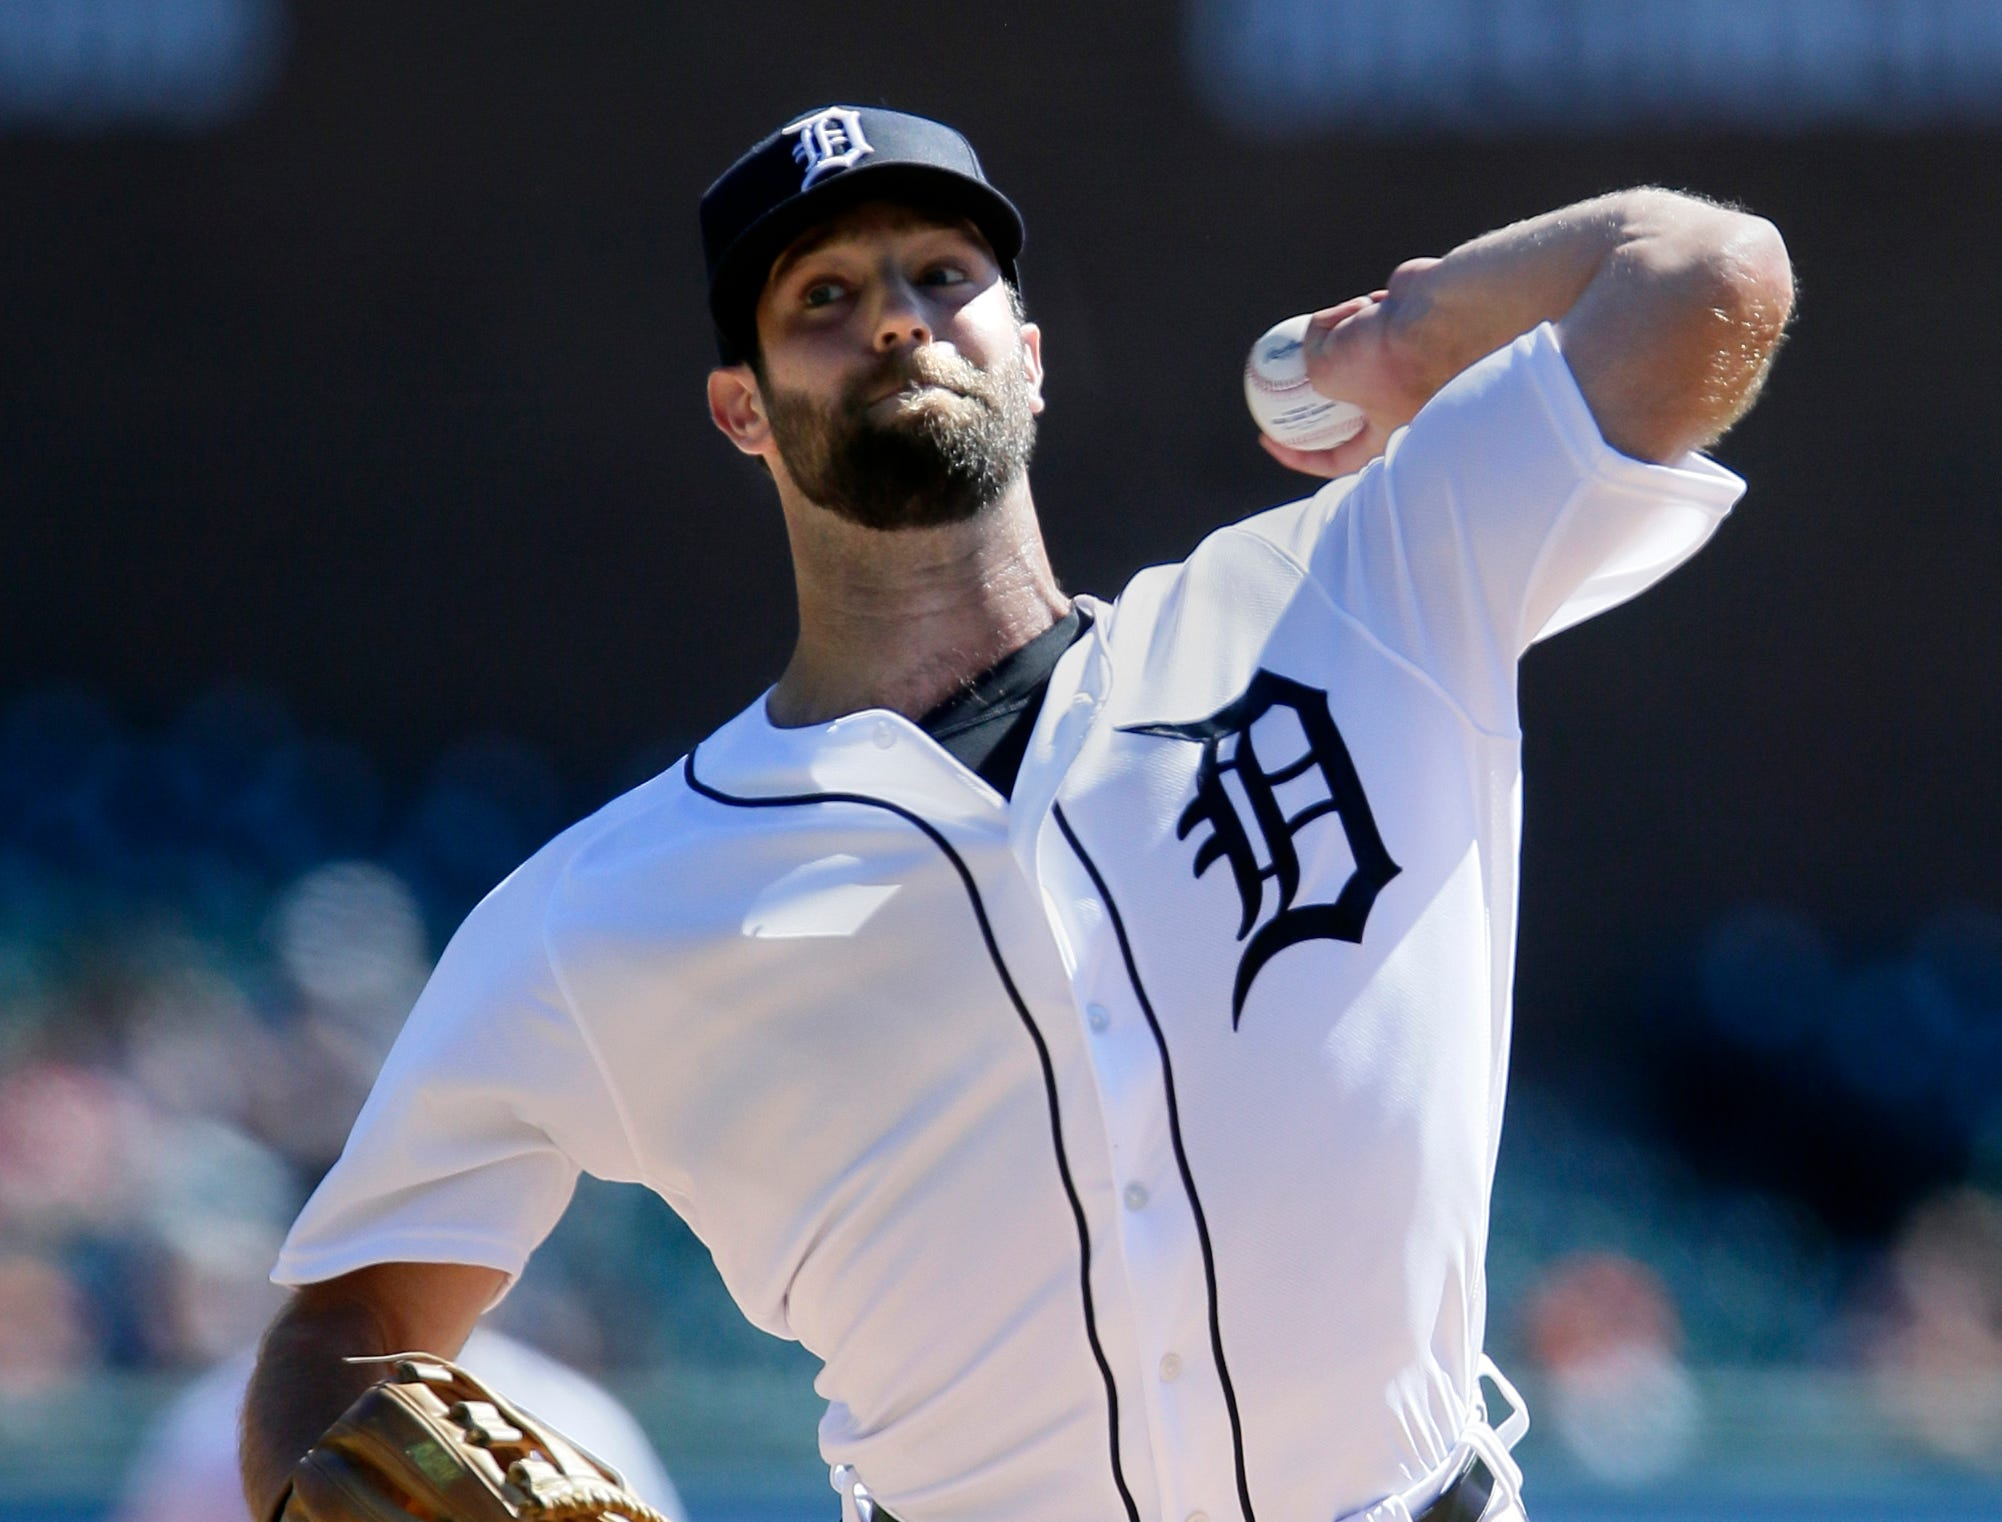 Tigers pitcher Daniel Norris throws during the second inning against the Royals on Sunday, Sept. 23, 2018, at Comerica Park.